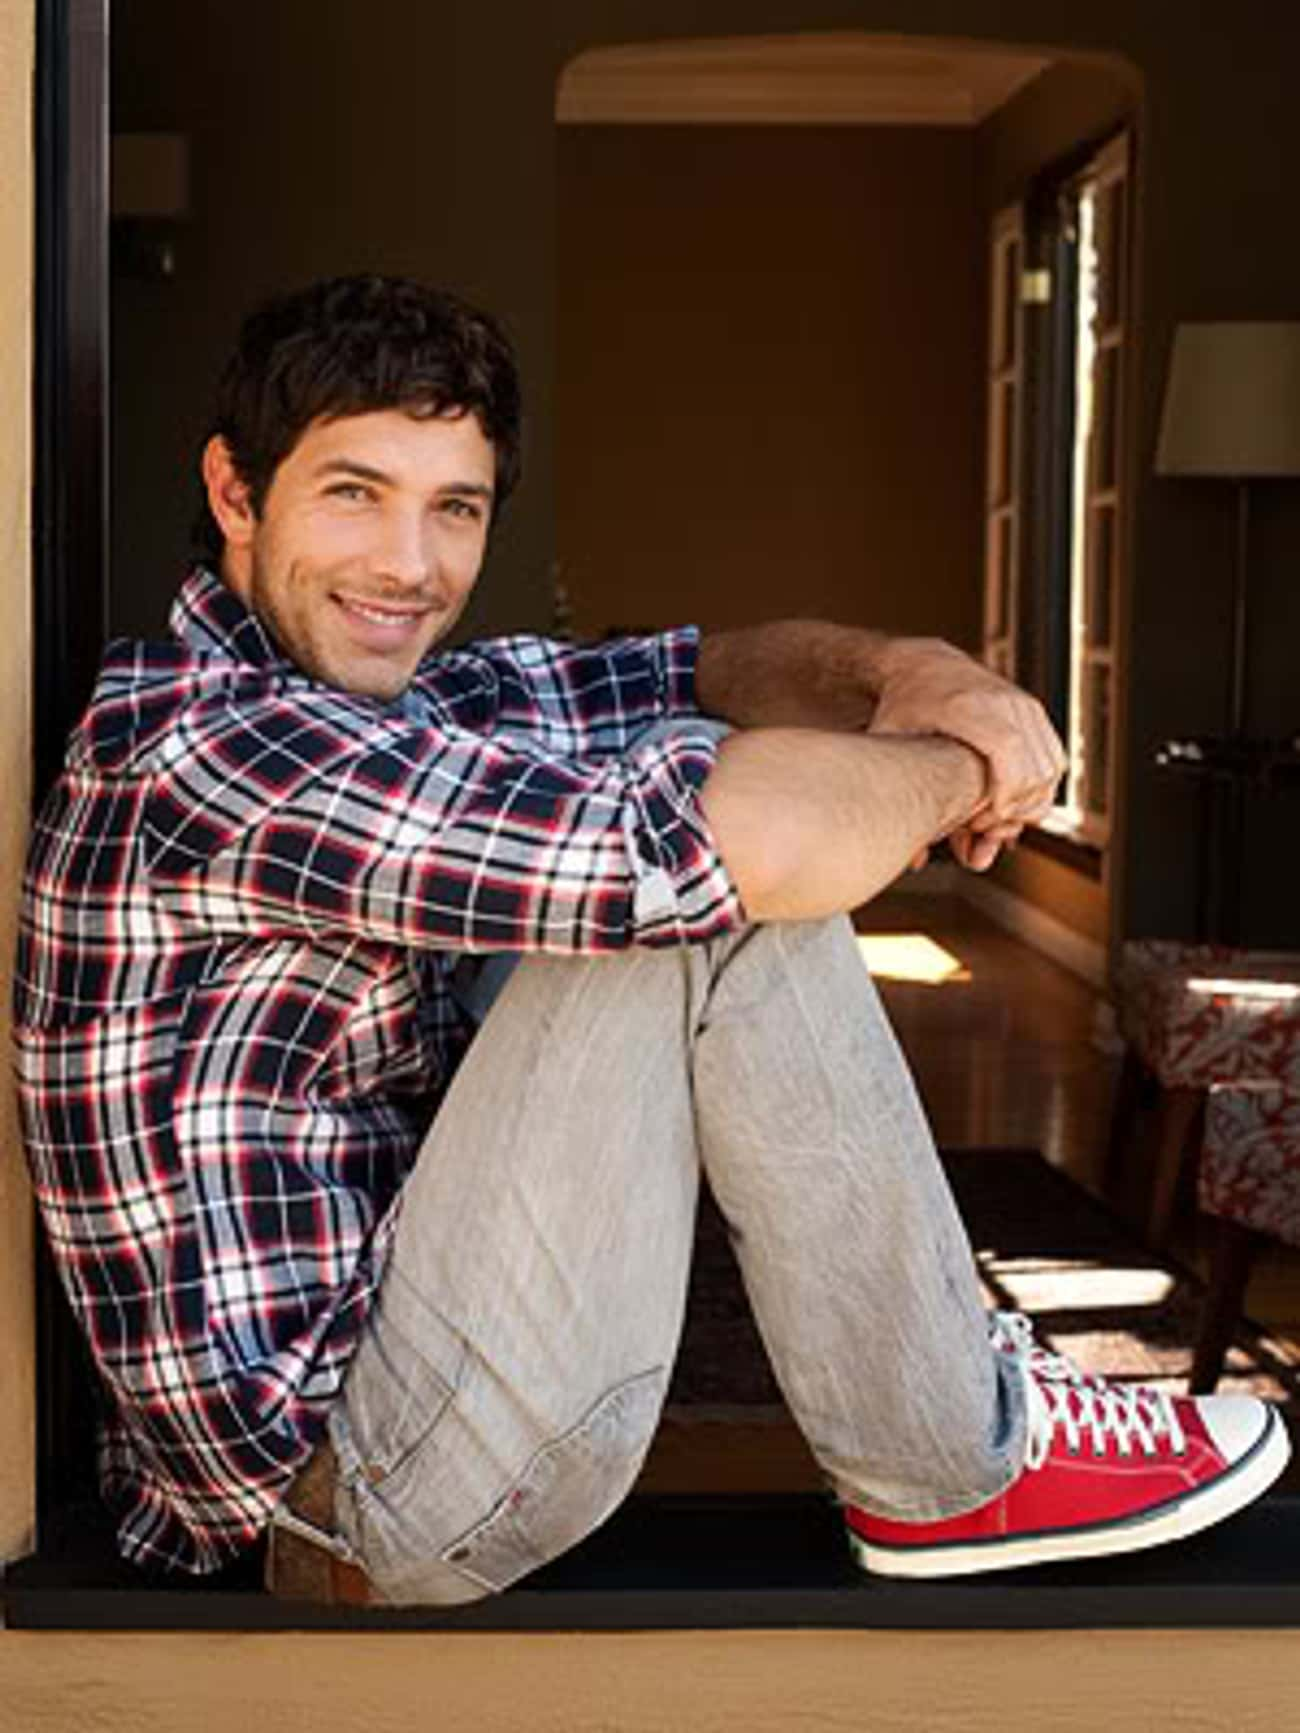 Michael Rady in Checkered Long Sleeve Shirt